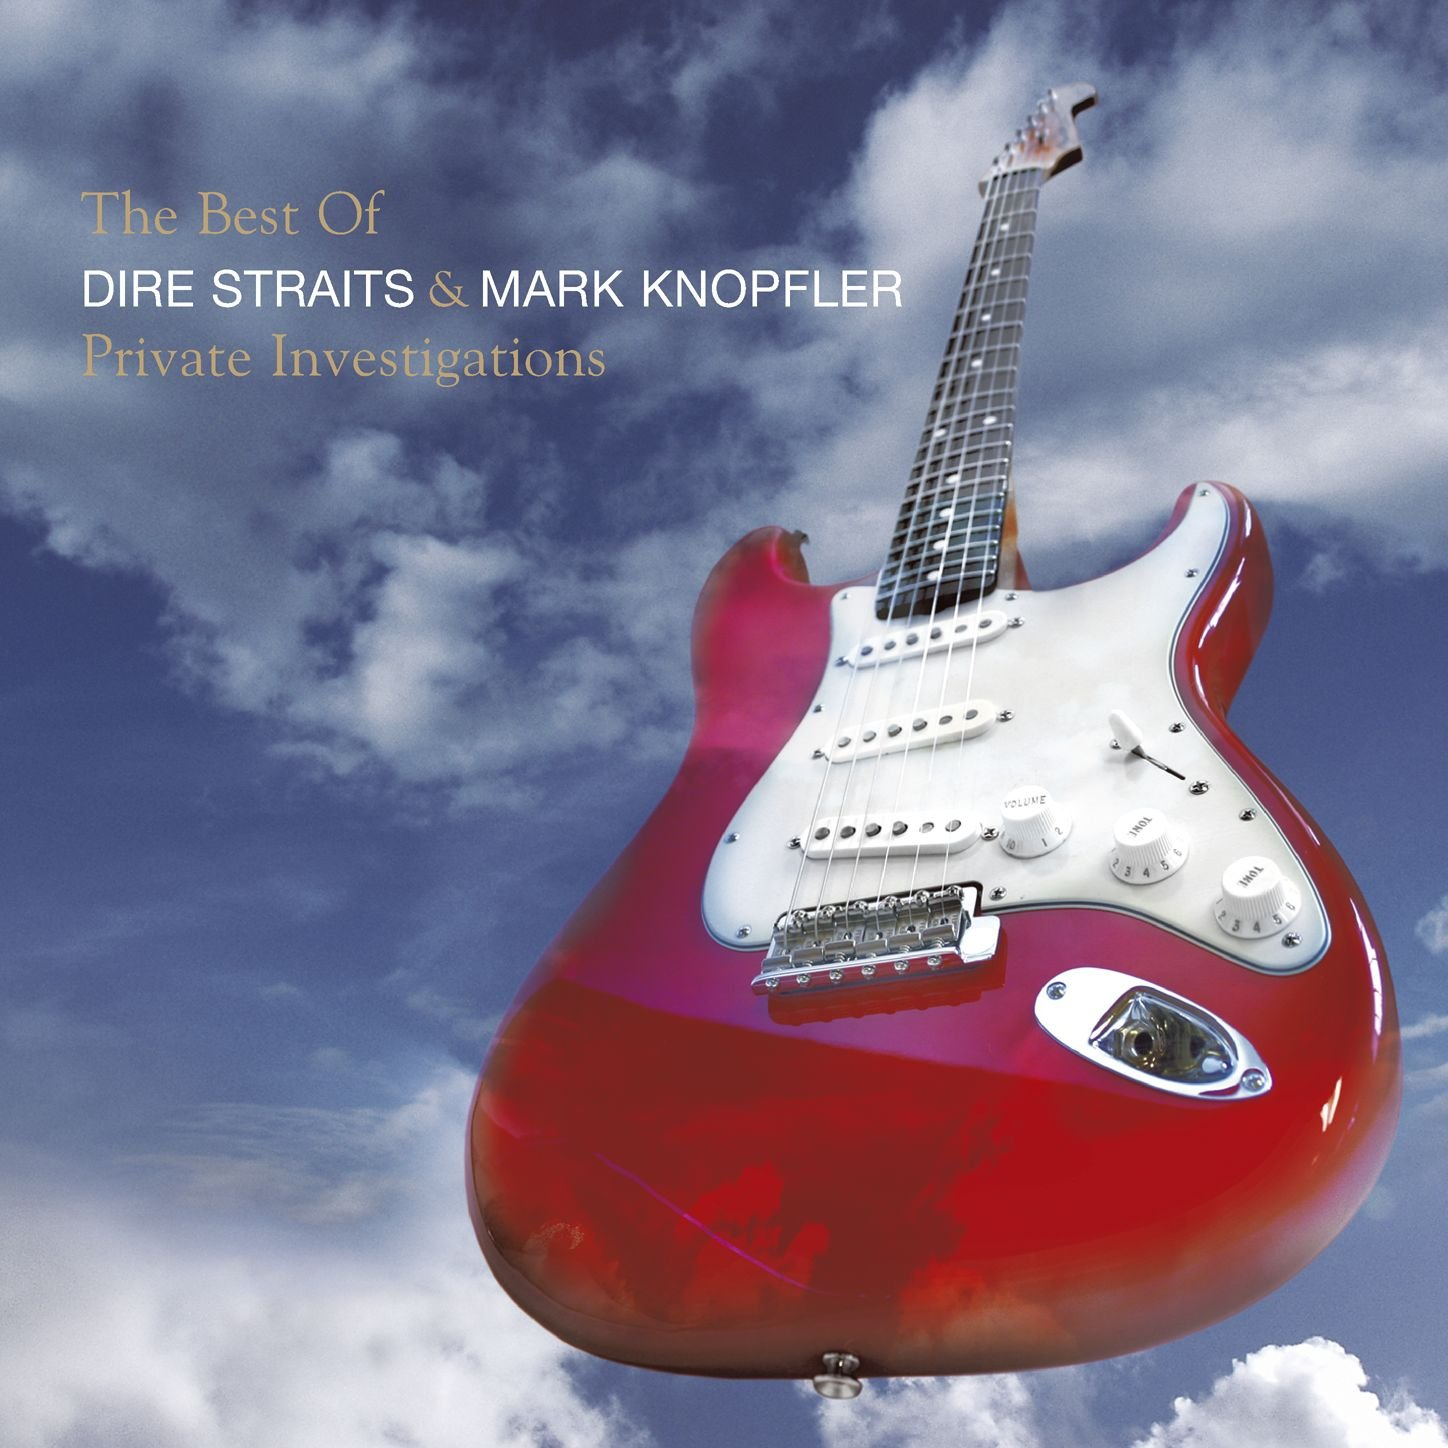 Best of Dire Straits & Mark Kn: Dire Straits, Knopfler: Amazon.es ...